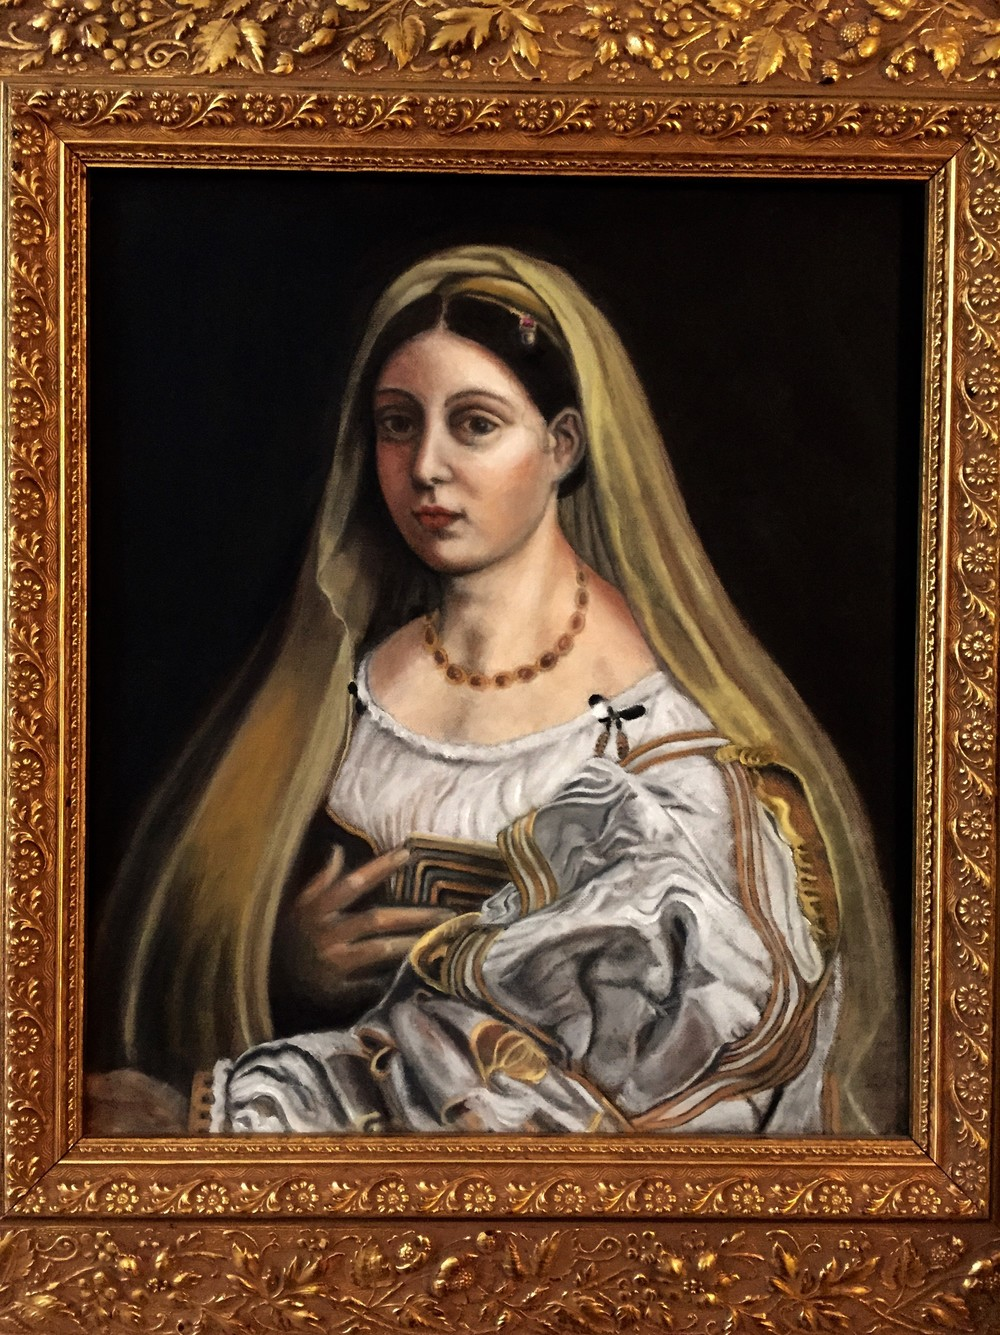 Oil study of Raphael's La Donna Velata